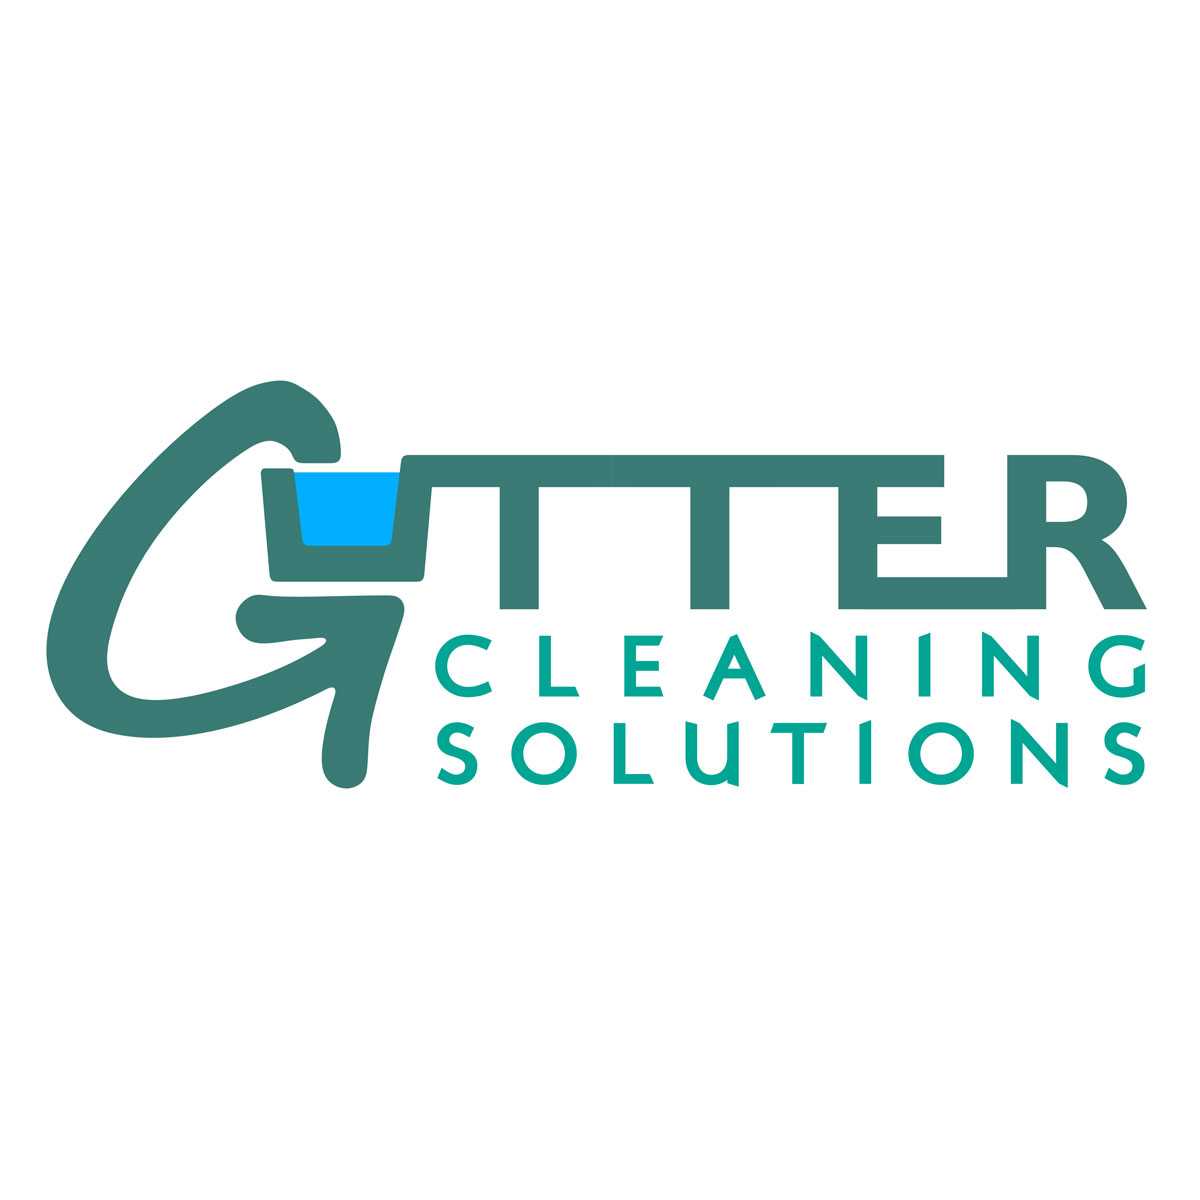 Gutter Cleaning Solutions Business Logo - logo design by PixelDuck